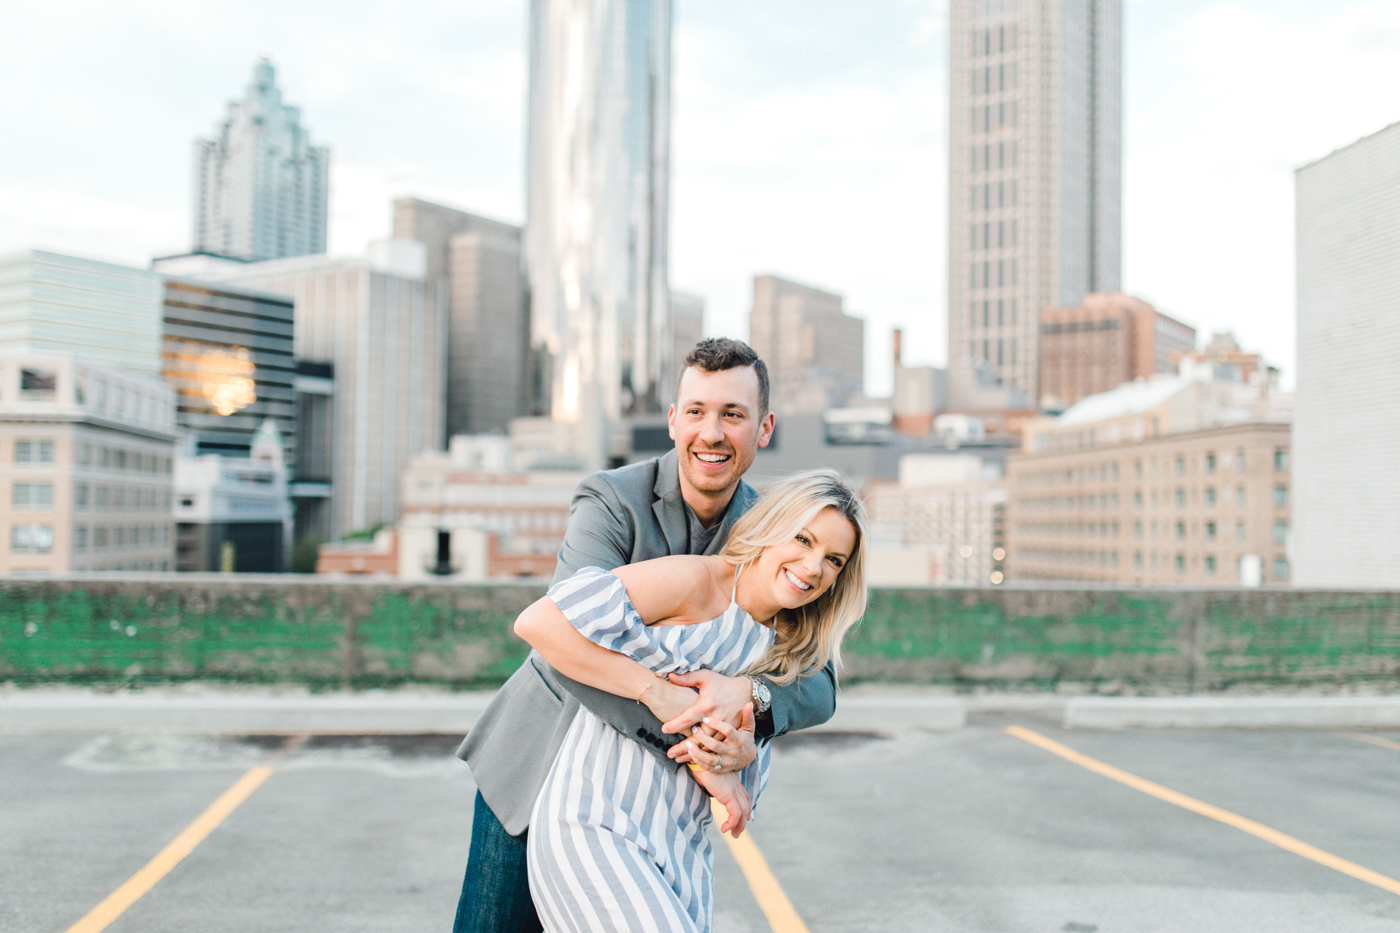 four corners photography best atlanta wedding photographer downtown atlanta engagement session engagement proposal ventanas downtown atlanta wedding atlanta wedding photographer-39.jpg